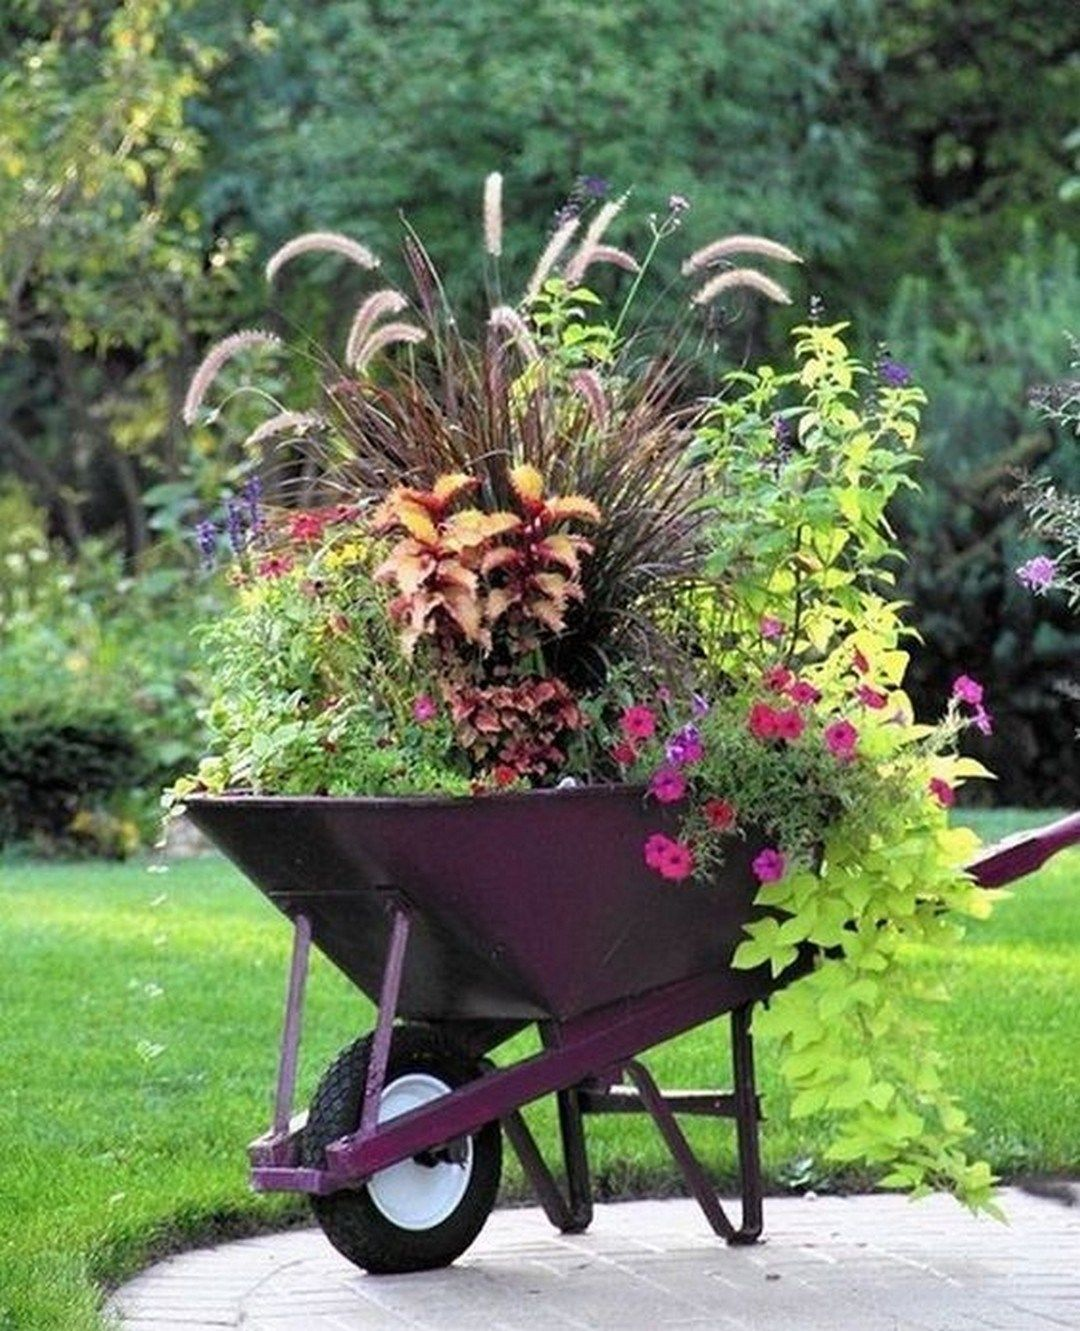 What Kind Of Plants Do You Plant In Your Garden? If You